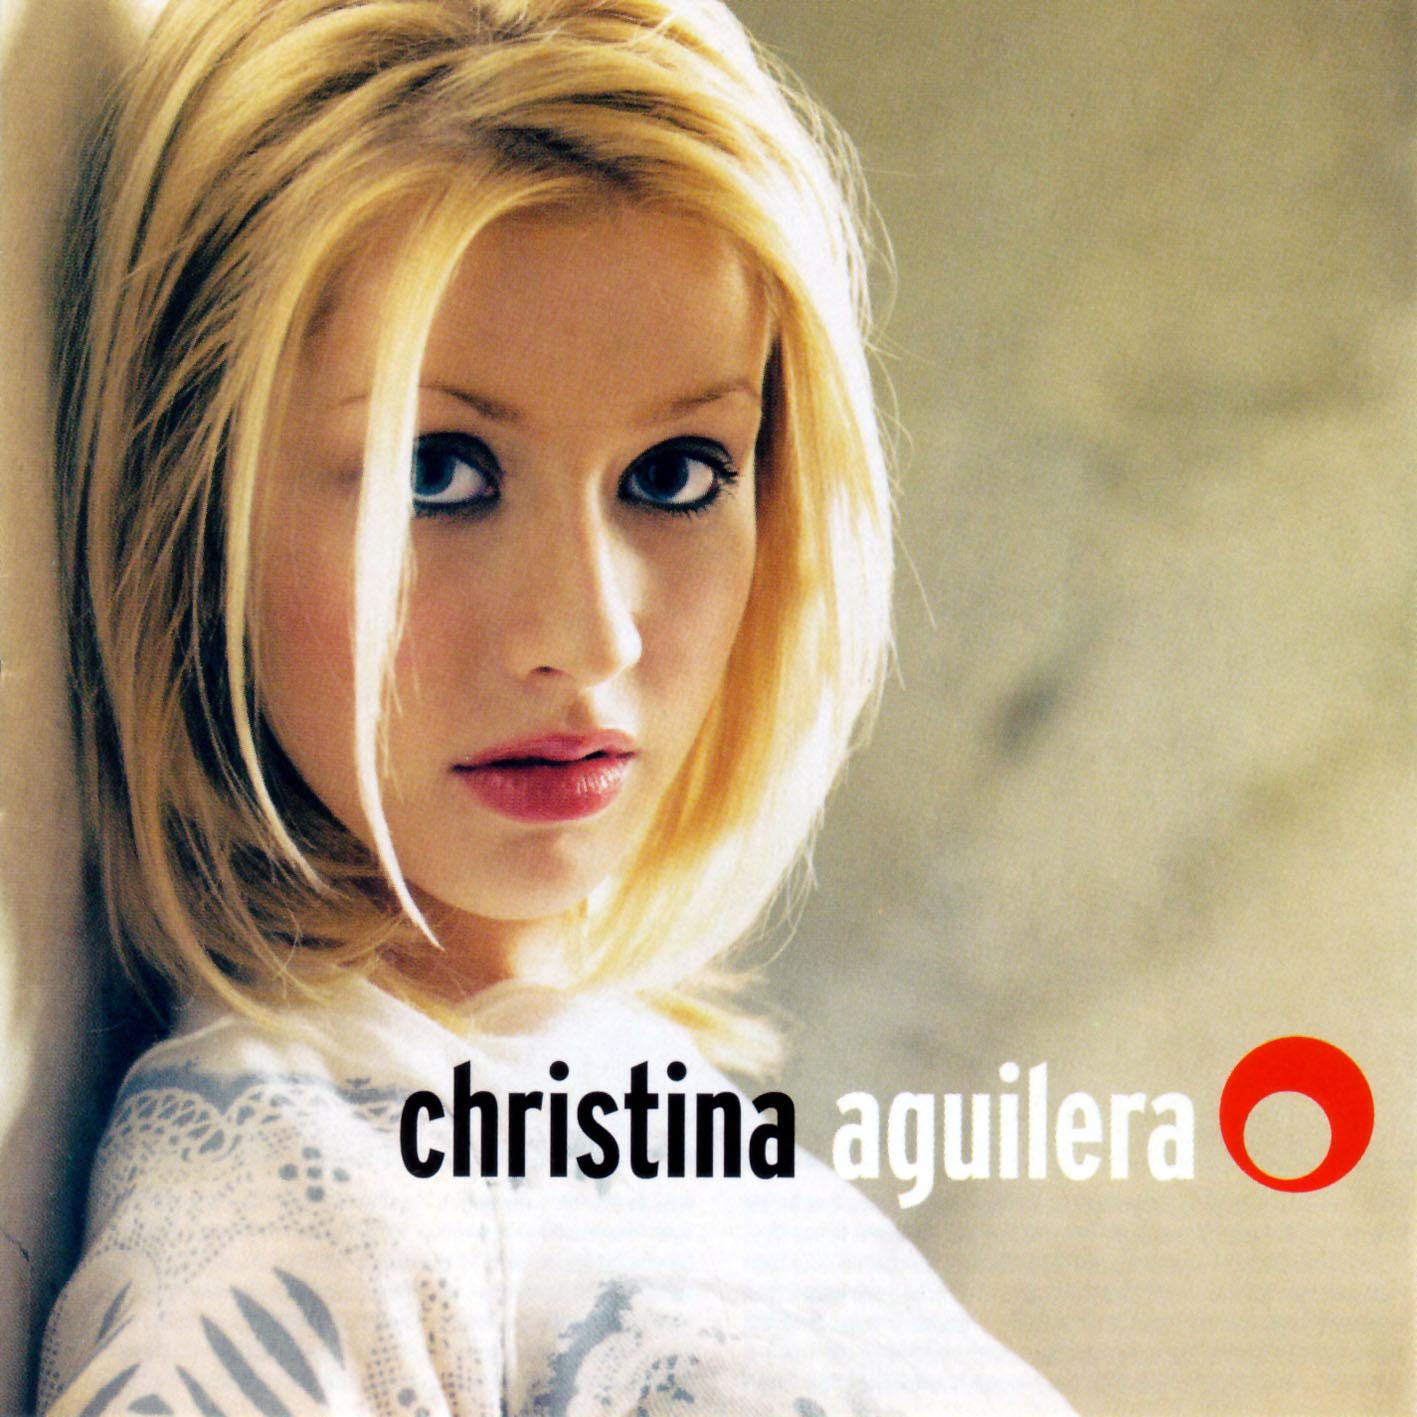 Christina Aguilera Christina Aguilera Is The Best American Singer And